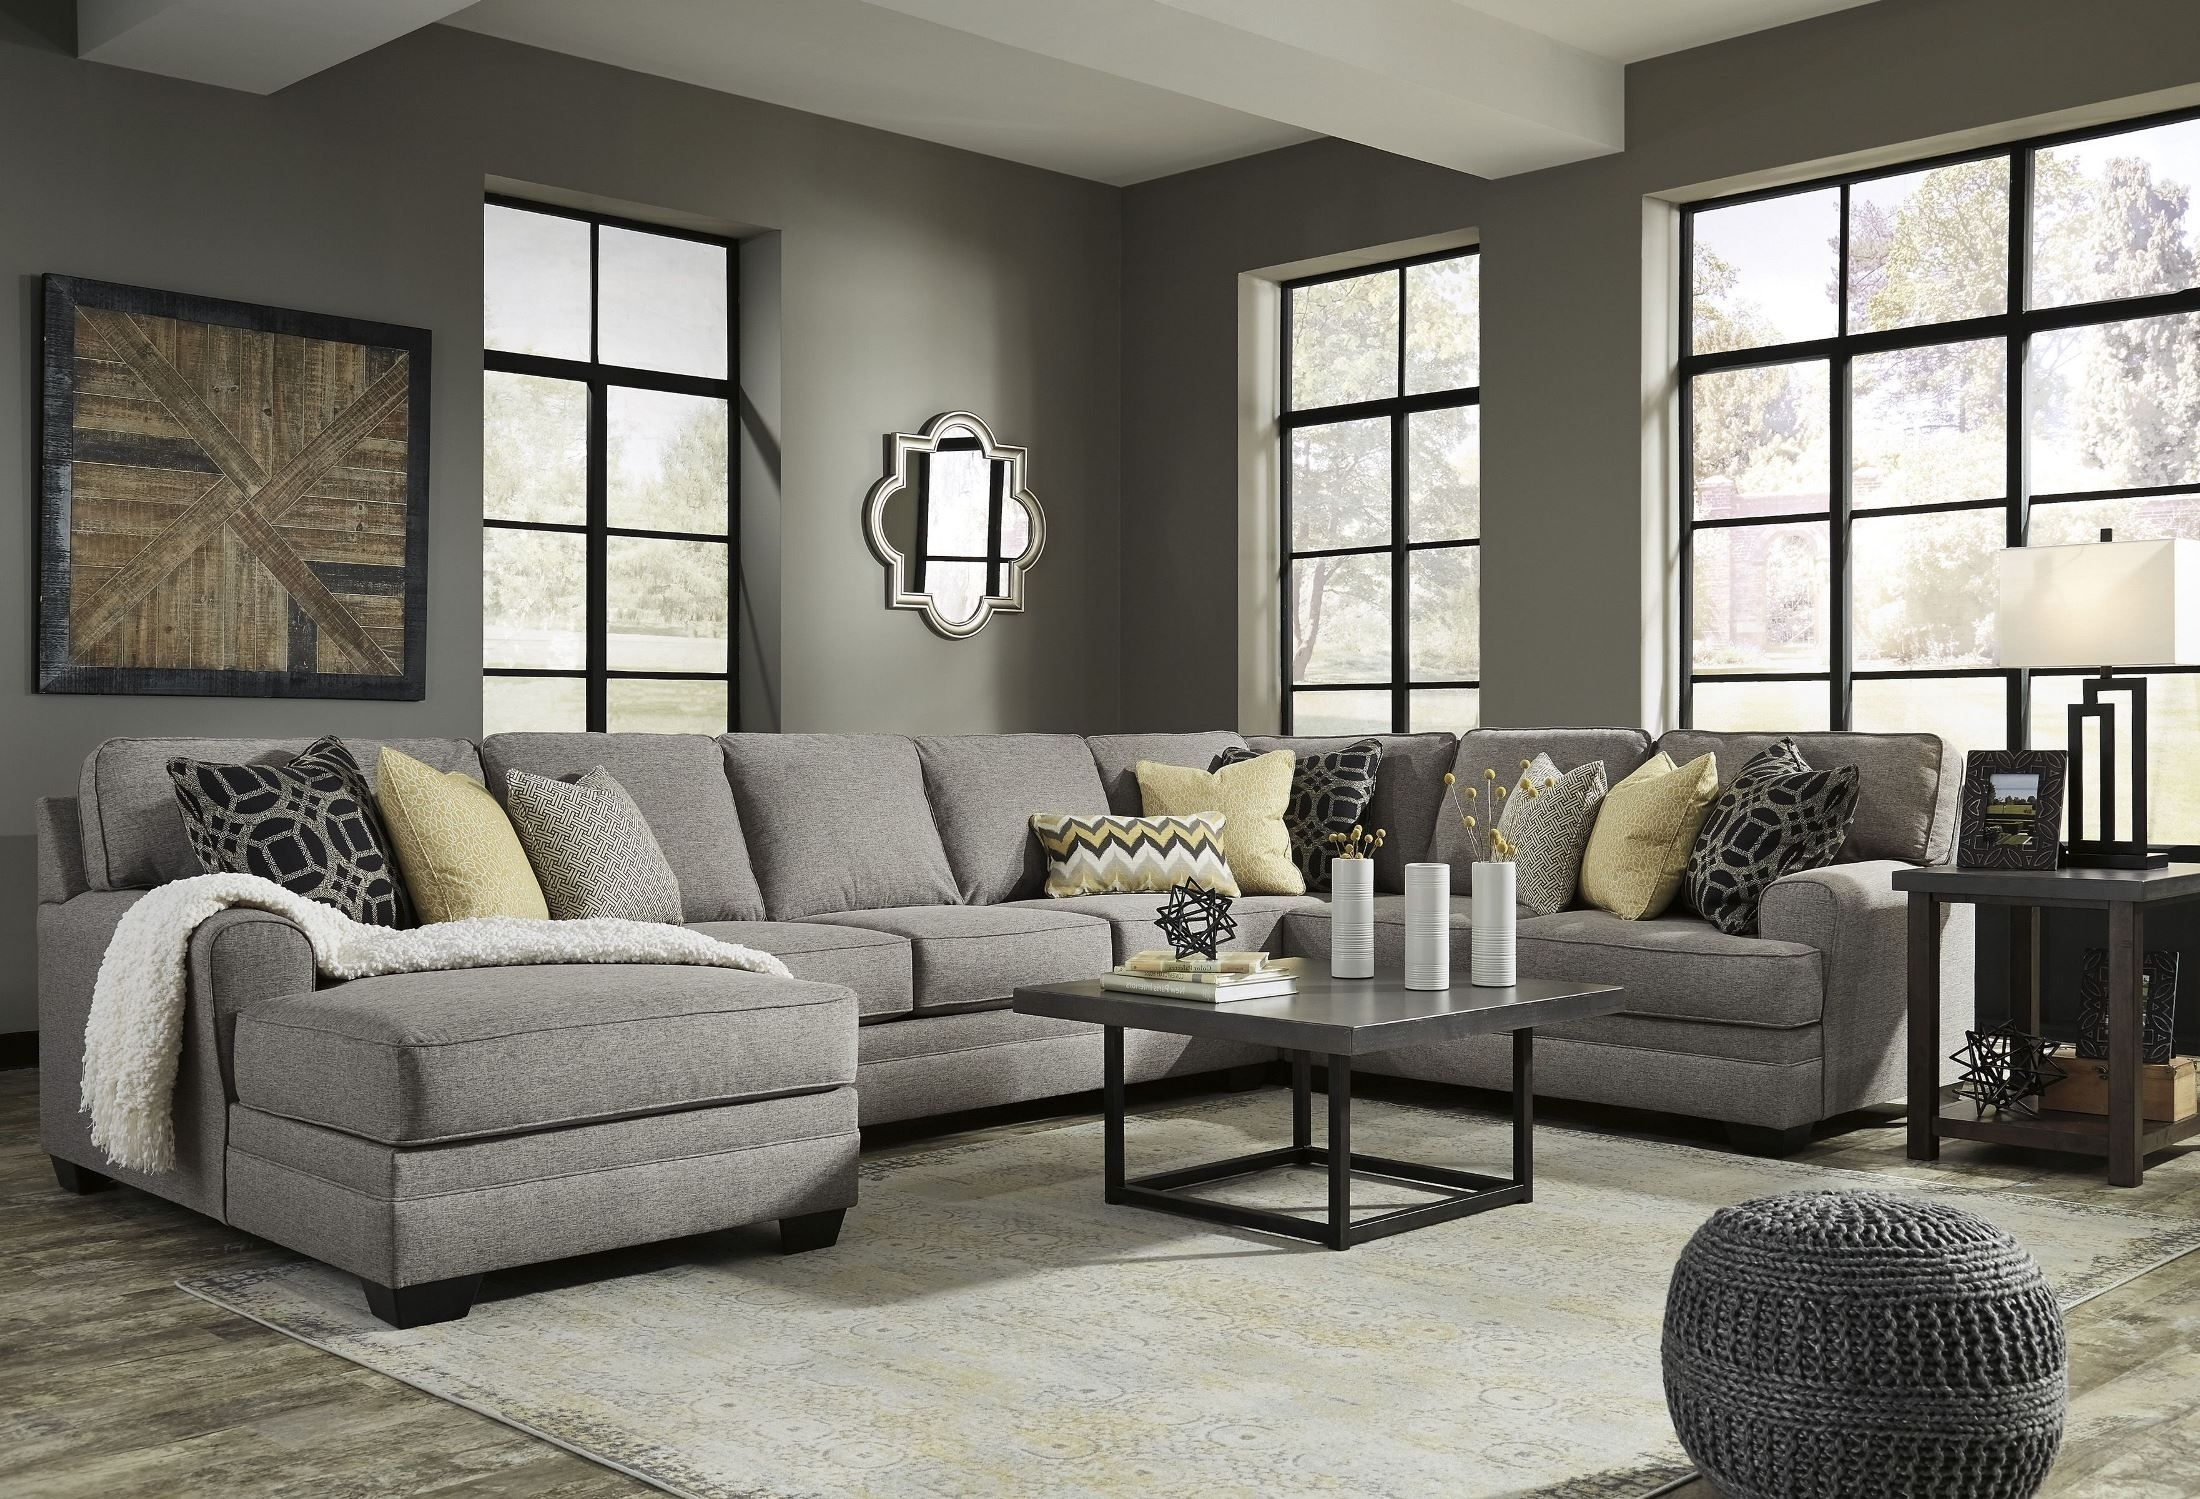 Large Chaise Sofas | Baci Living Room Throughout Delano 2 Piece Sectionals With Raf Oversized Chaise (View 22 of 25)